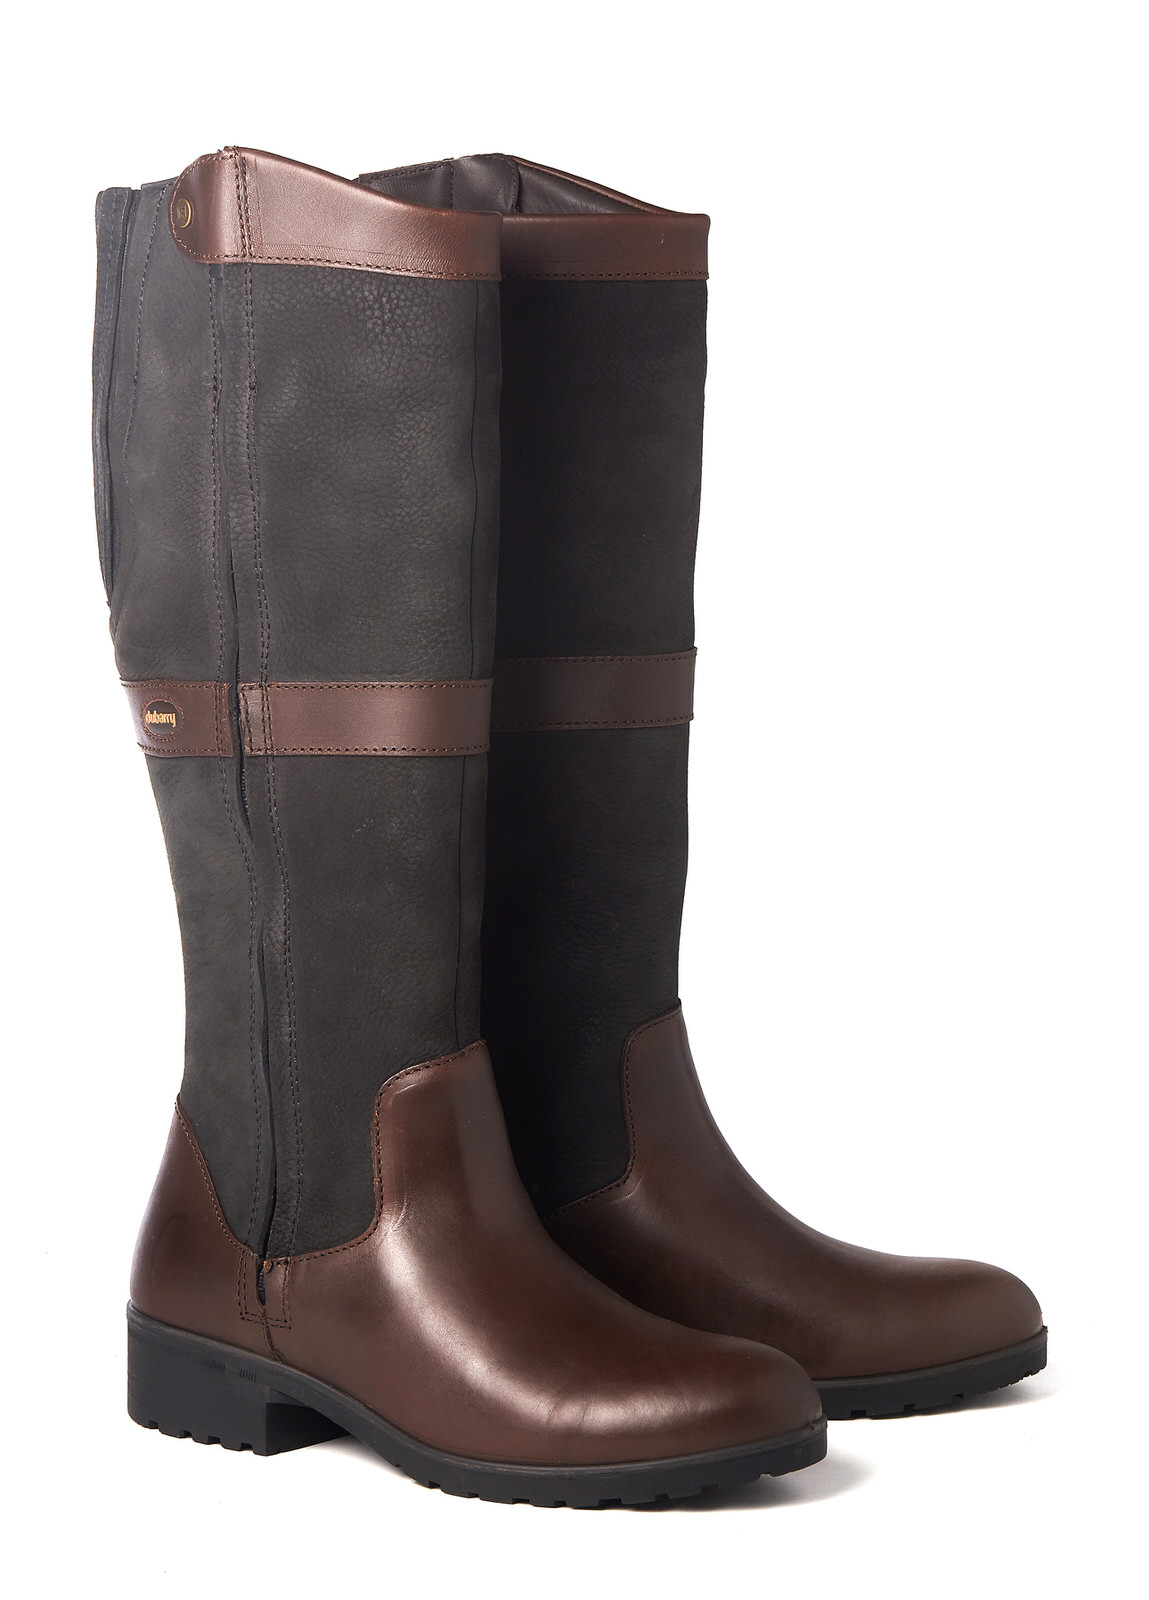 Sligo_Country_Boot_Black/Brown_Image_1